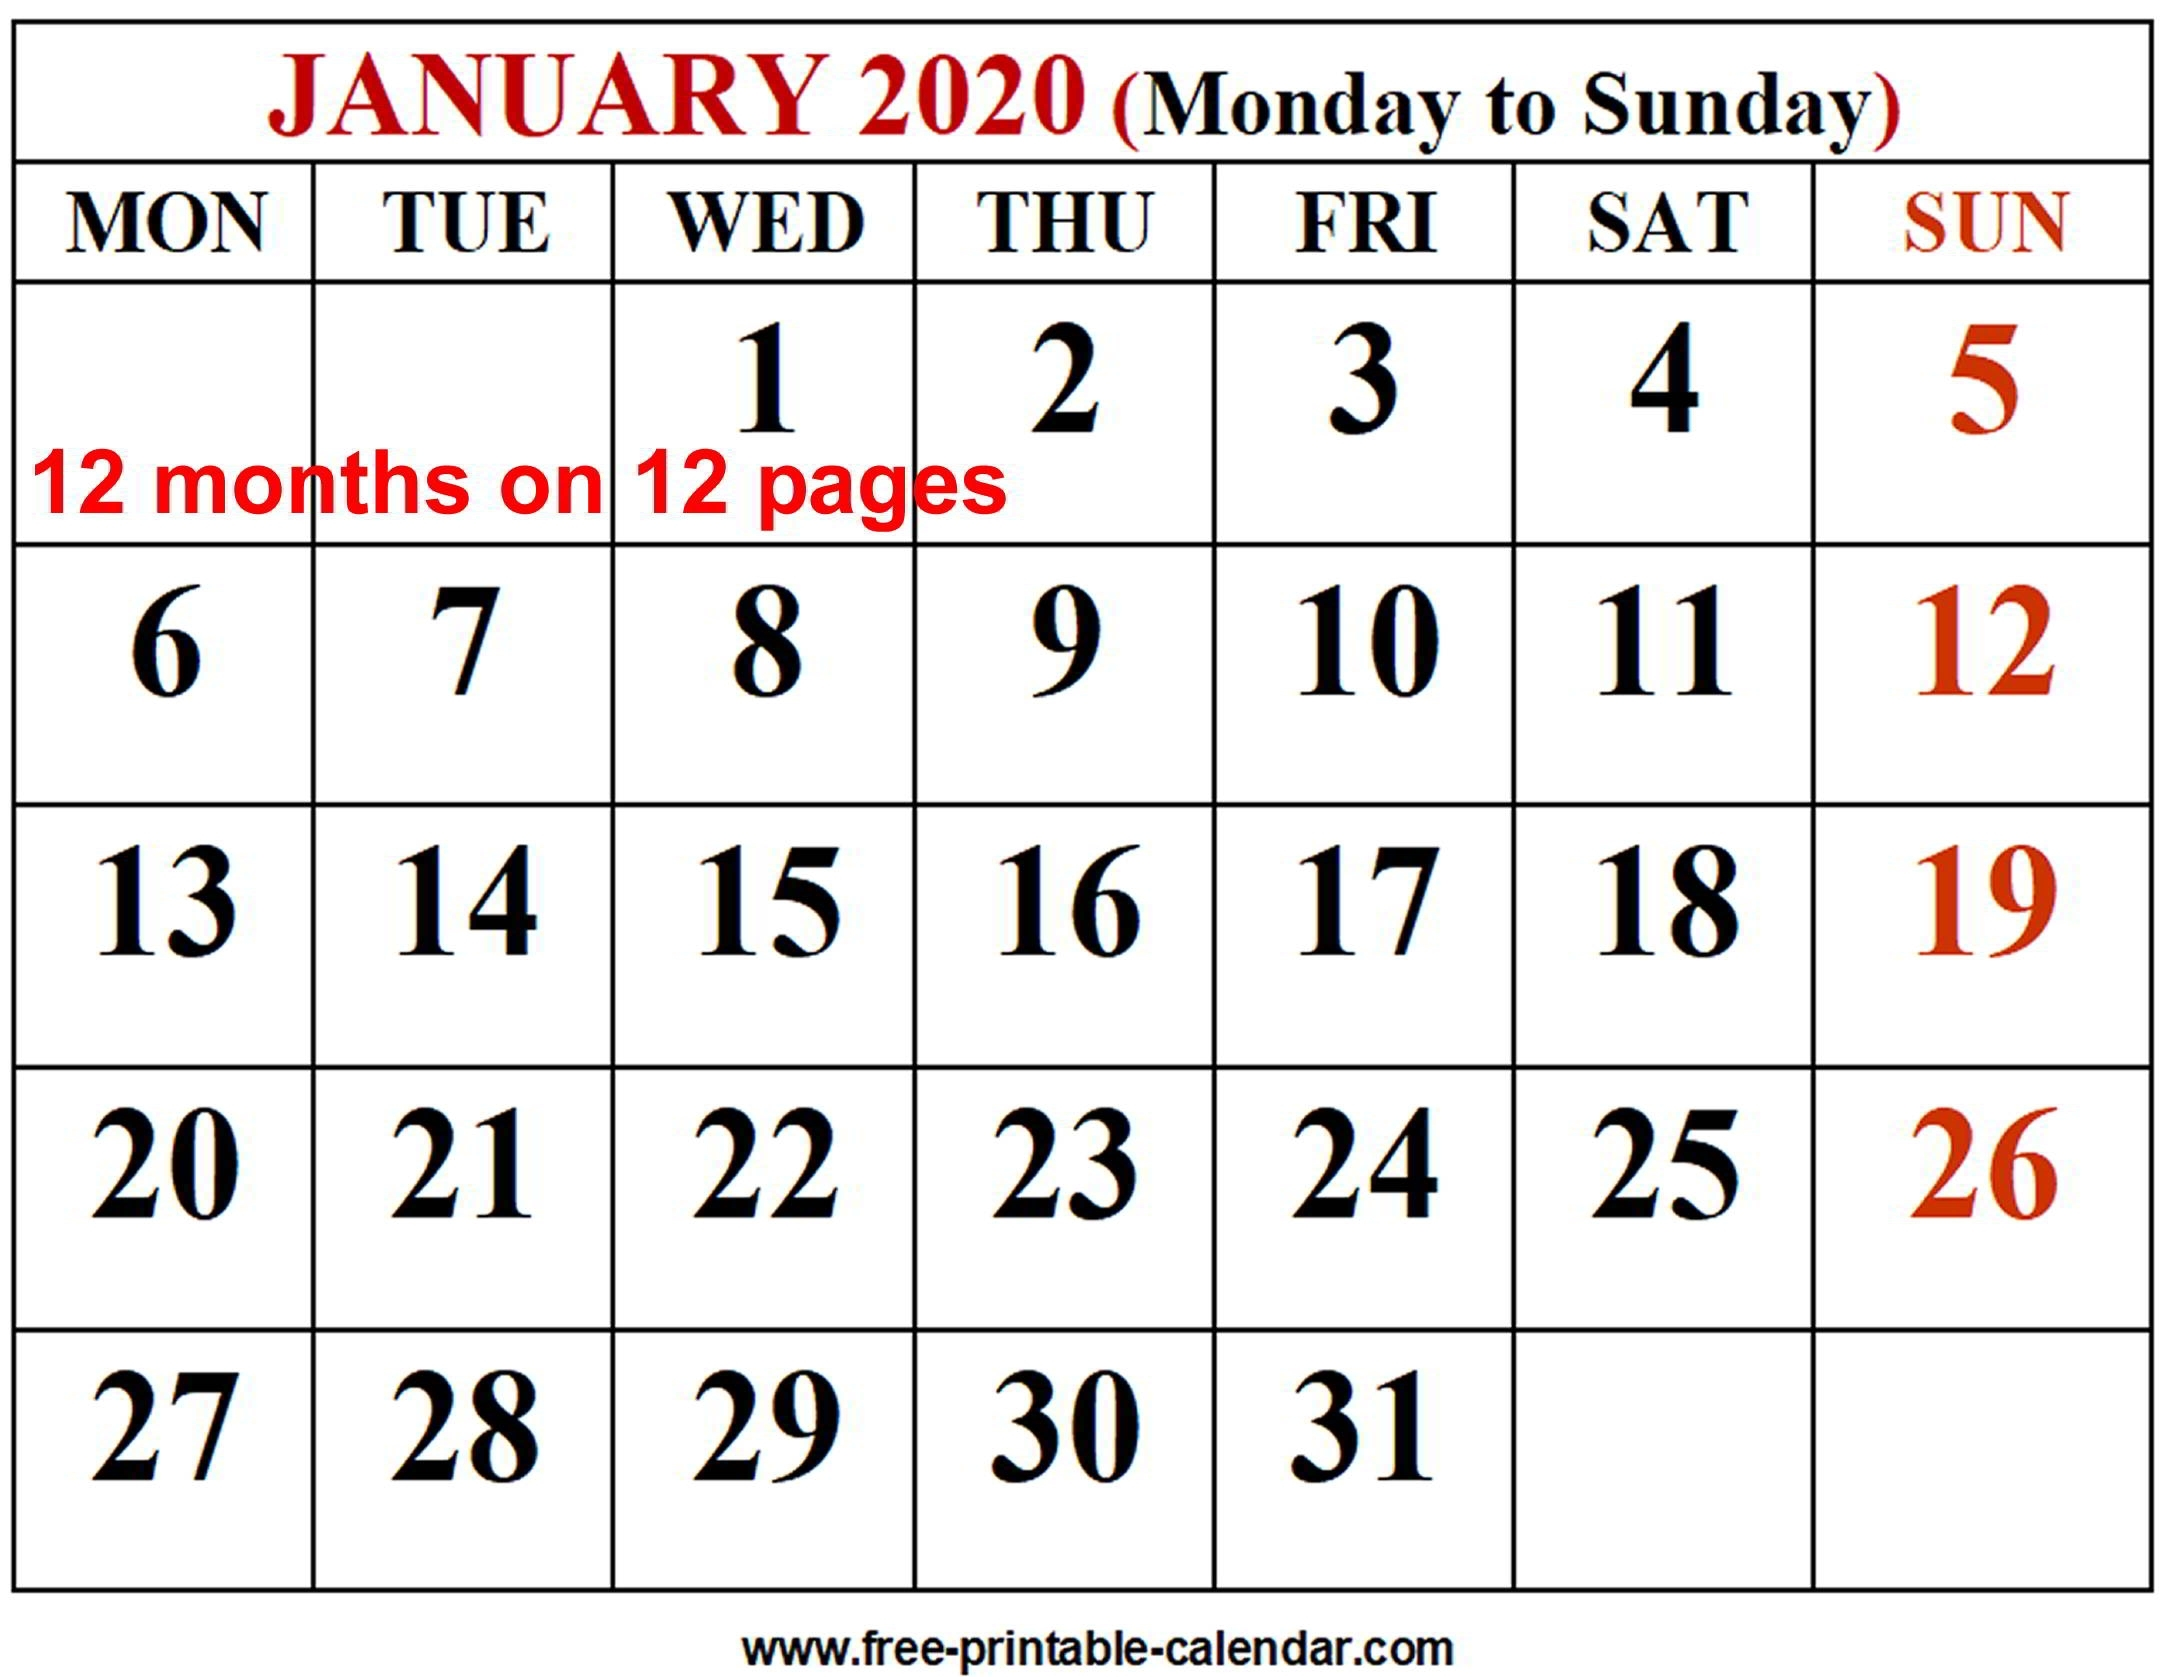 2020 Calendar Template - Free-Printable-Calendar with 2020 12 Month Monday To Sunday Calendar Template